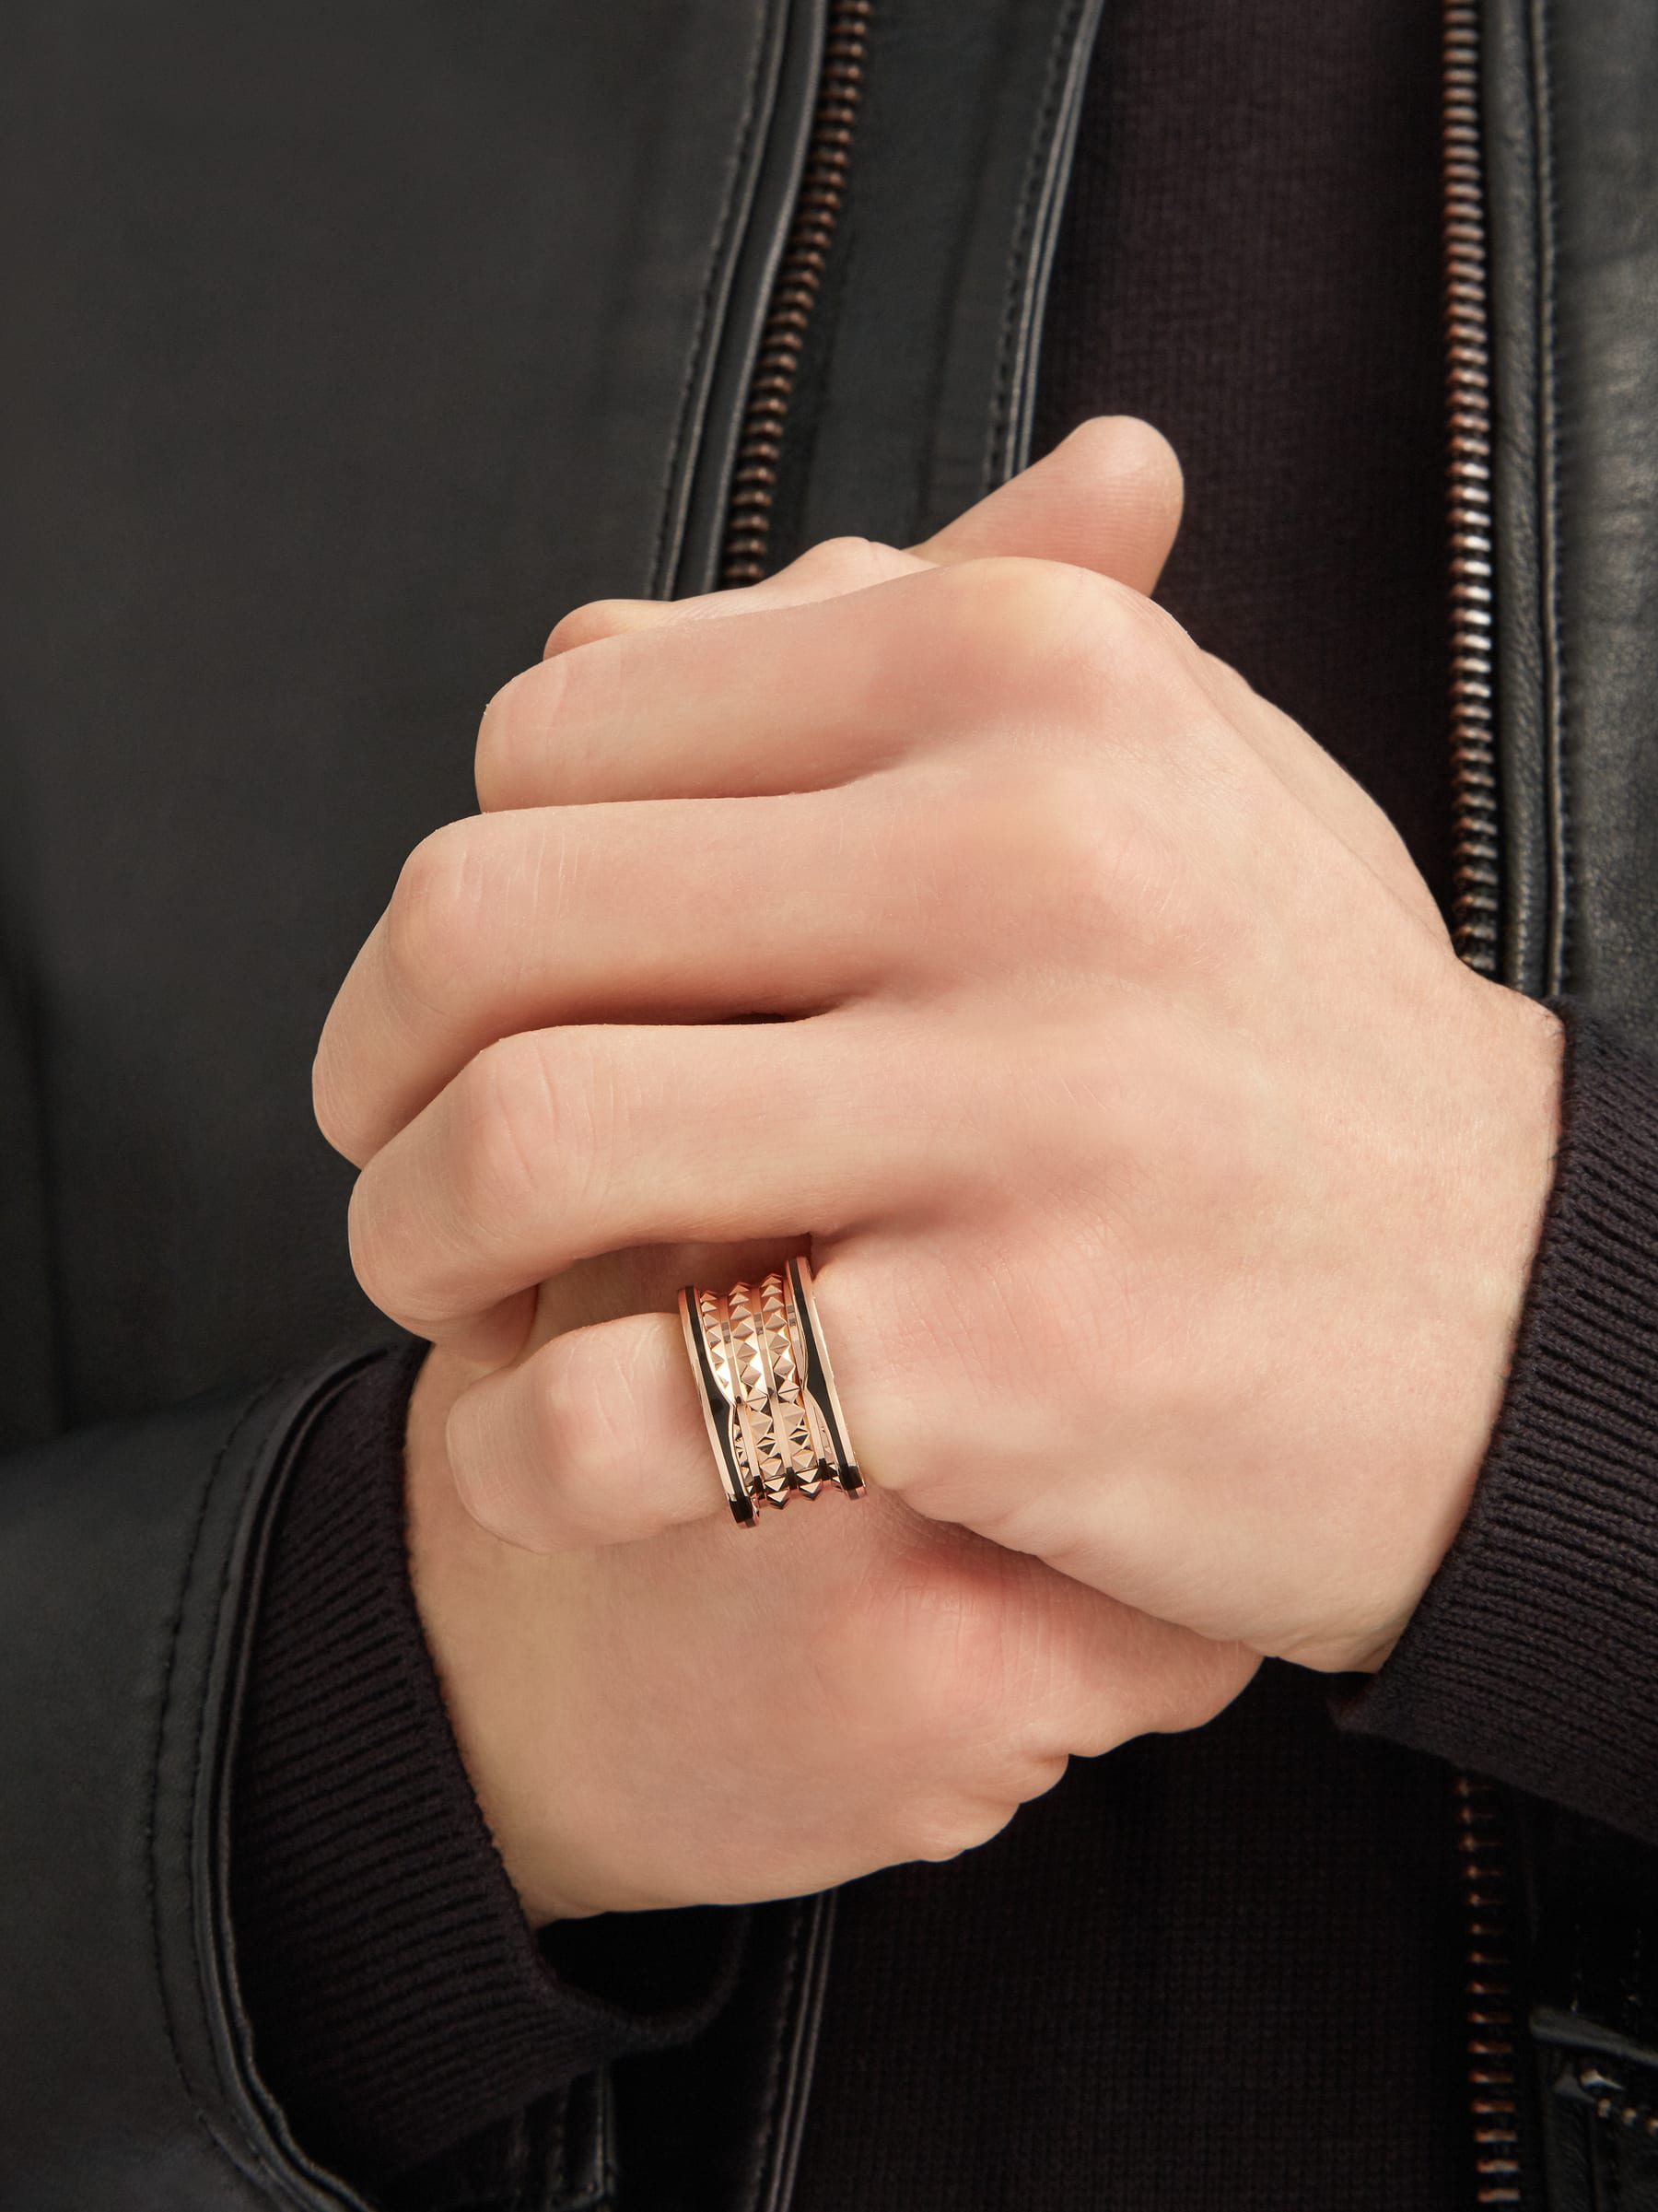 B.zero1 Rock four-band ring in 18 kt rose gold with studded spiral and black ceramic inserts on the edges. AN859089 image 5